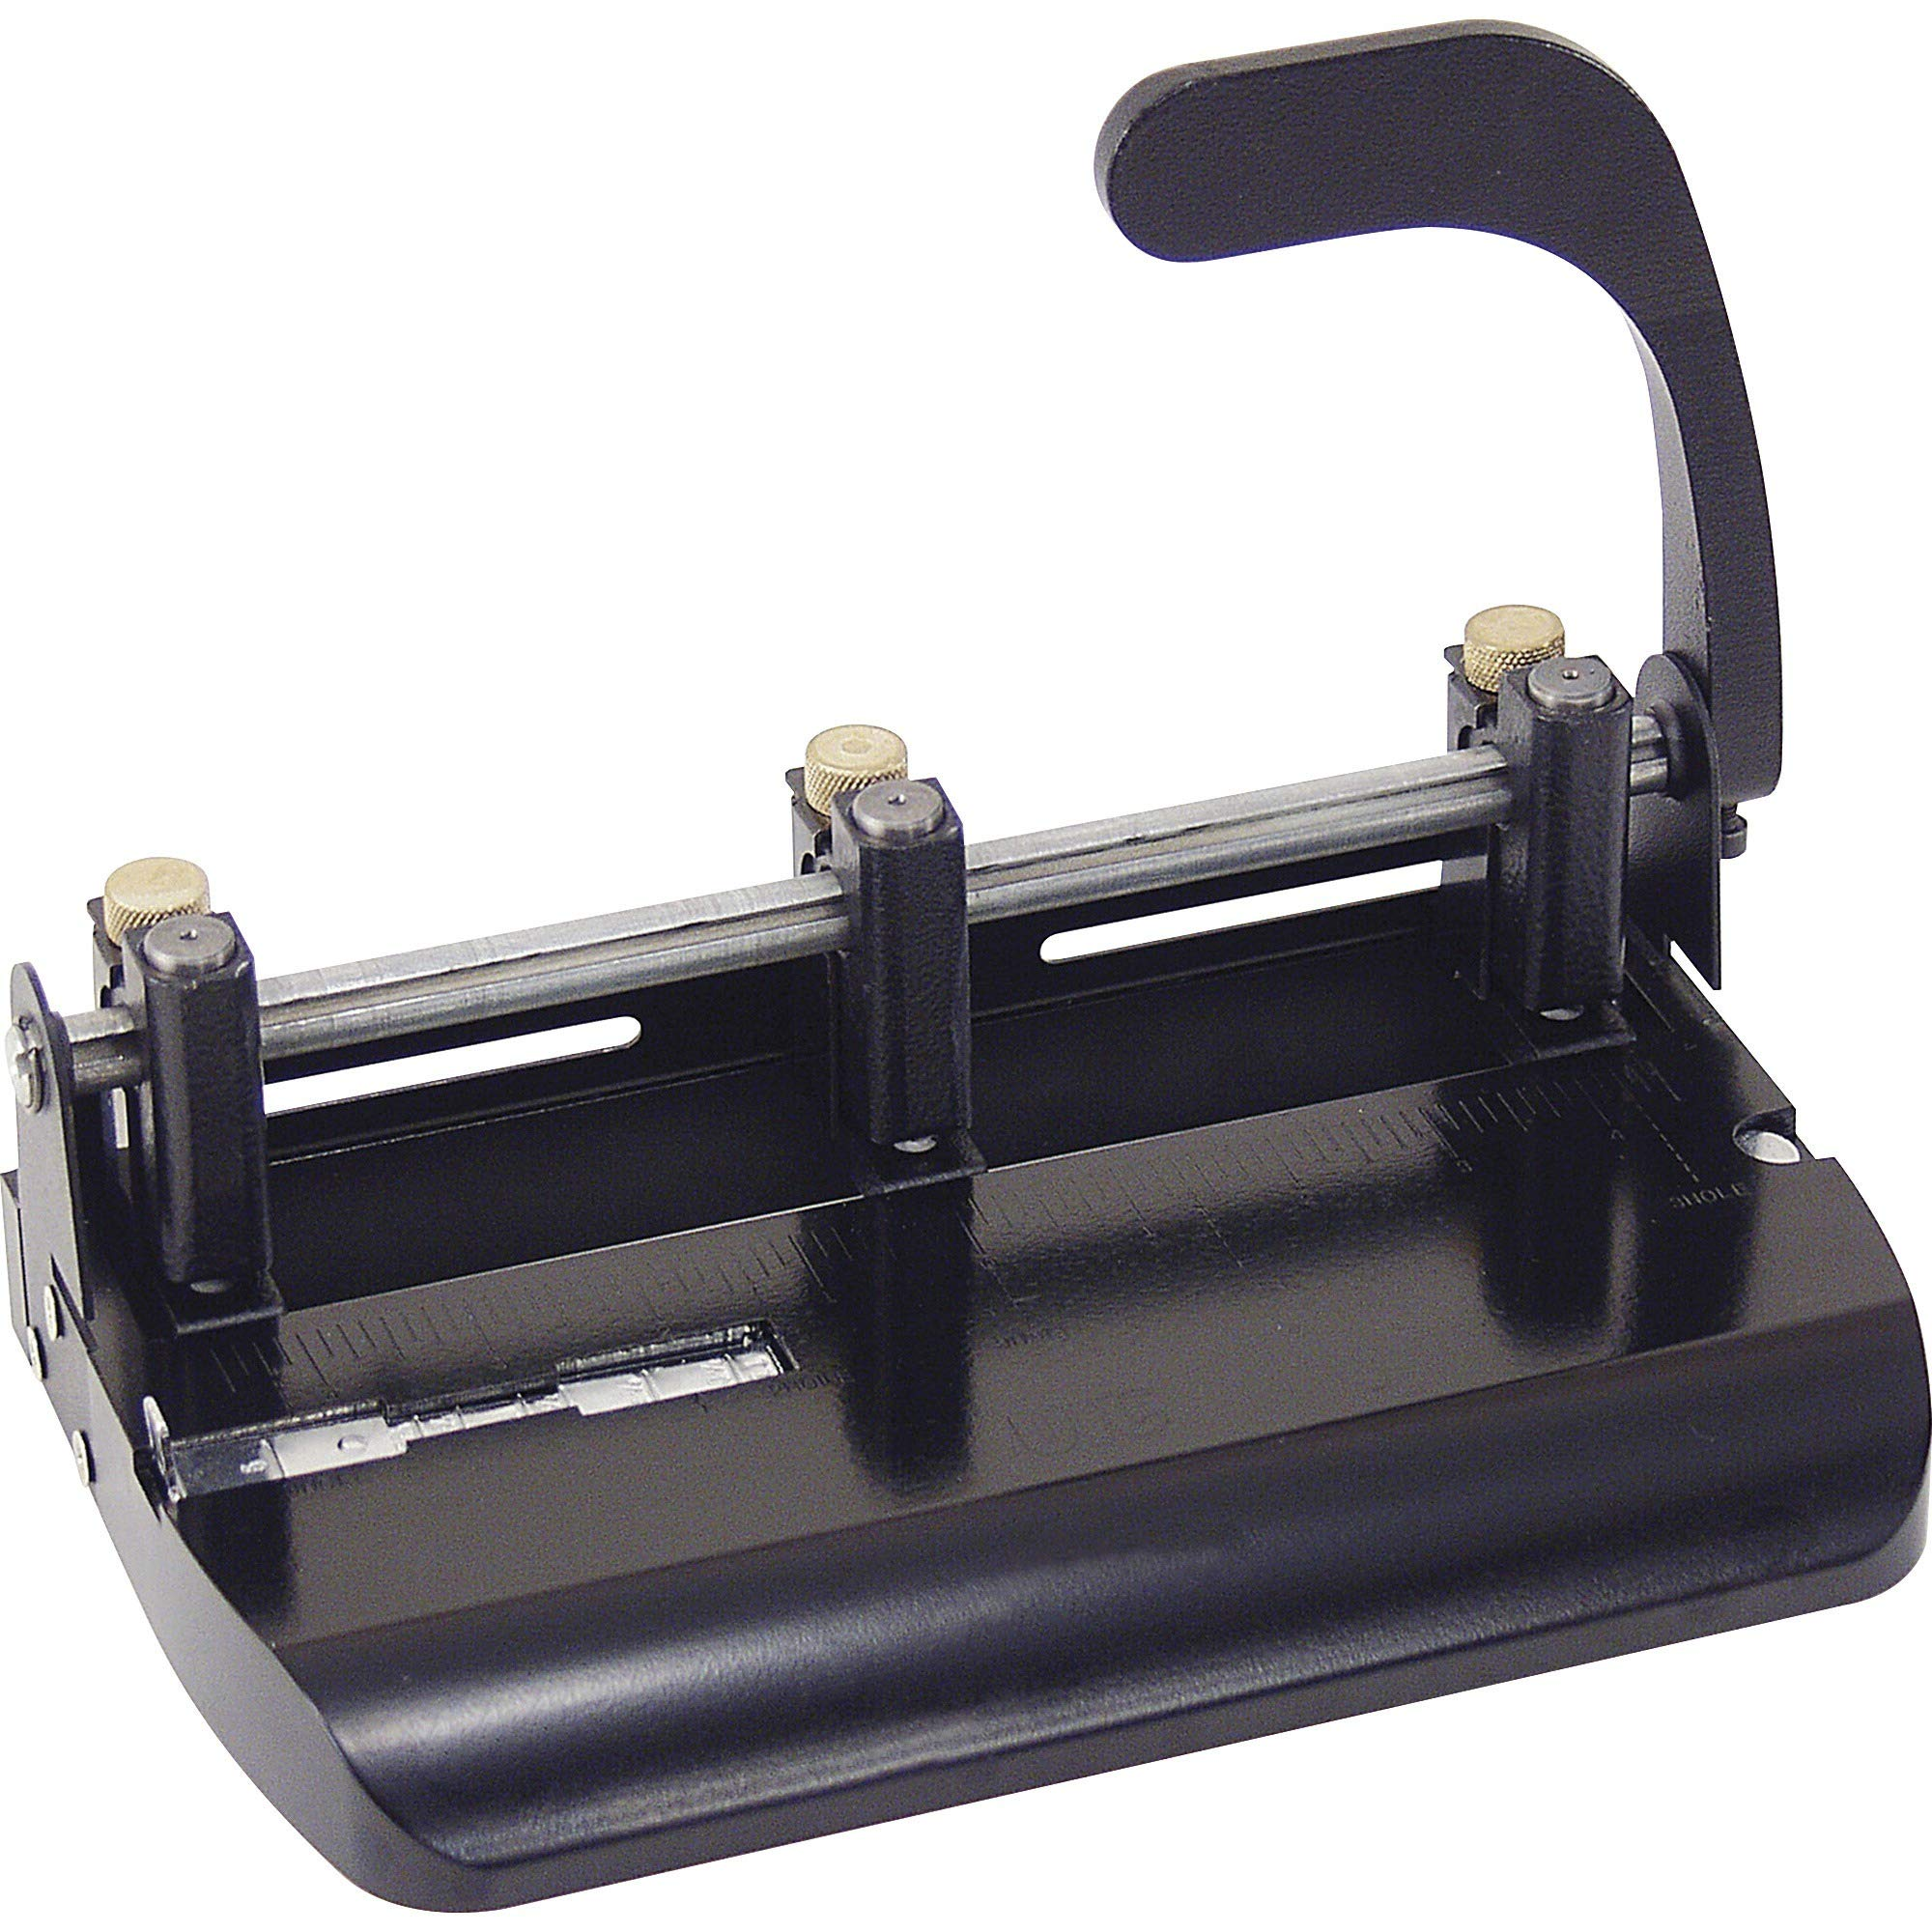 OIC90078 - Officemate OIC Heavy-Duty Adjustable Three-Hole Punch